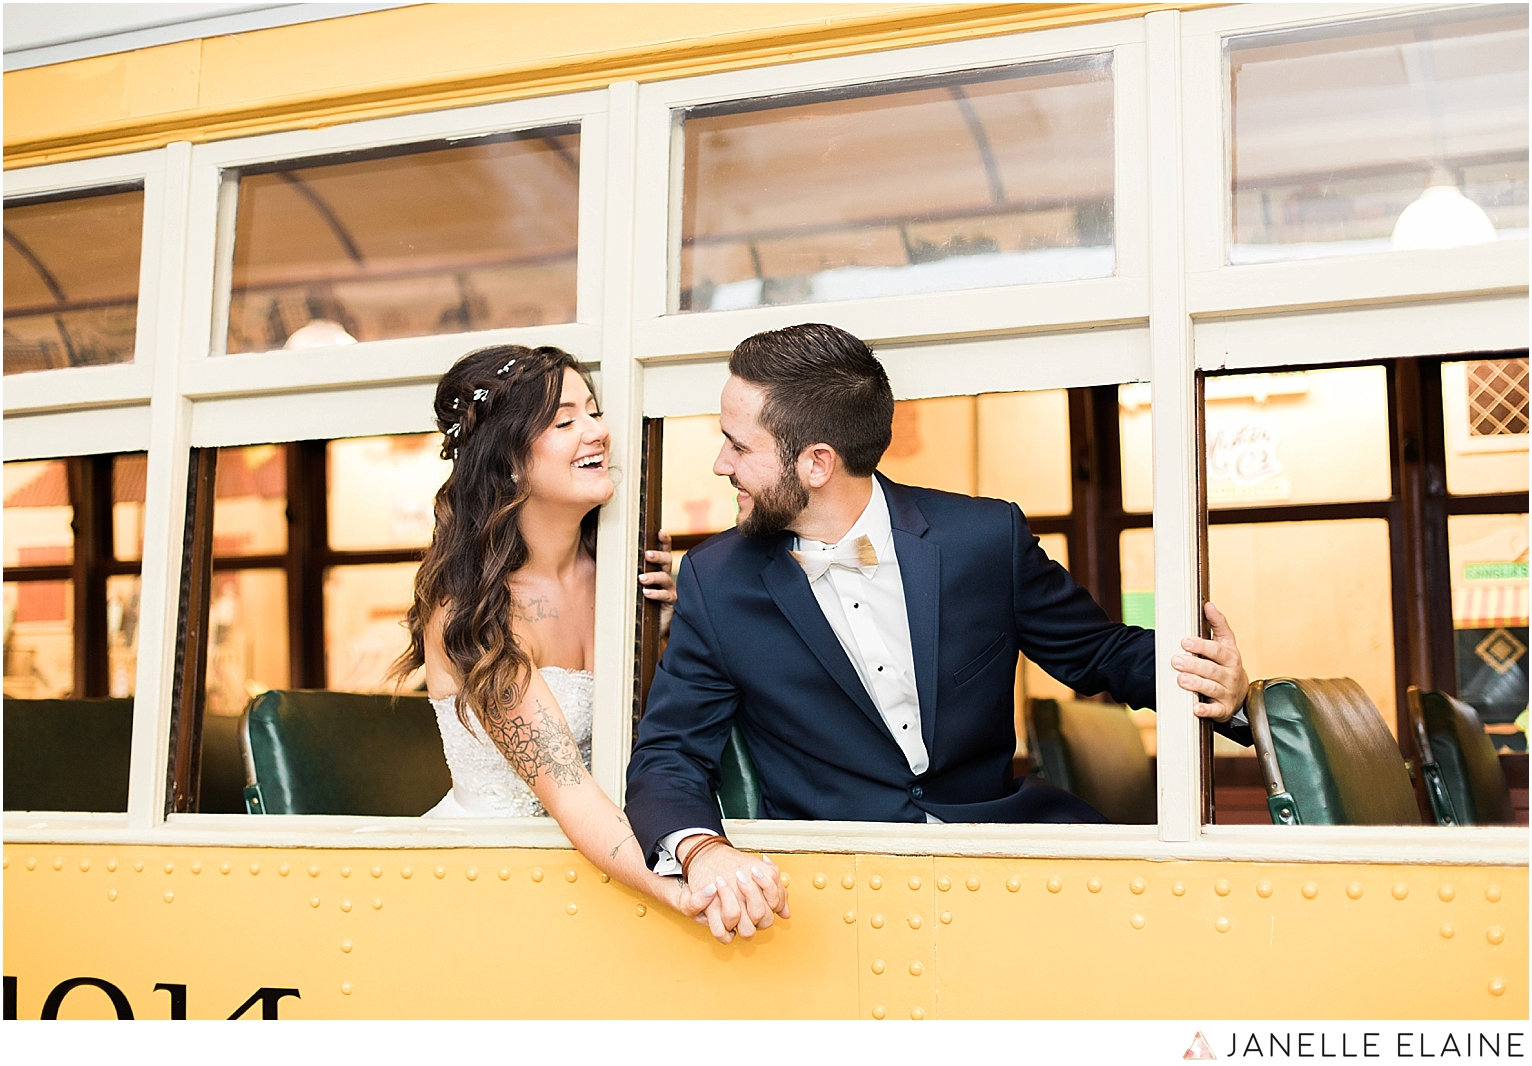 seattle wedding photographers-durham museum-wedding-omaha ne-destination-wedding-photographers-janelle elaine-midwest bride-19.jpg